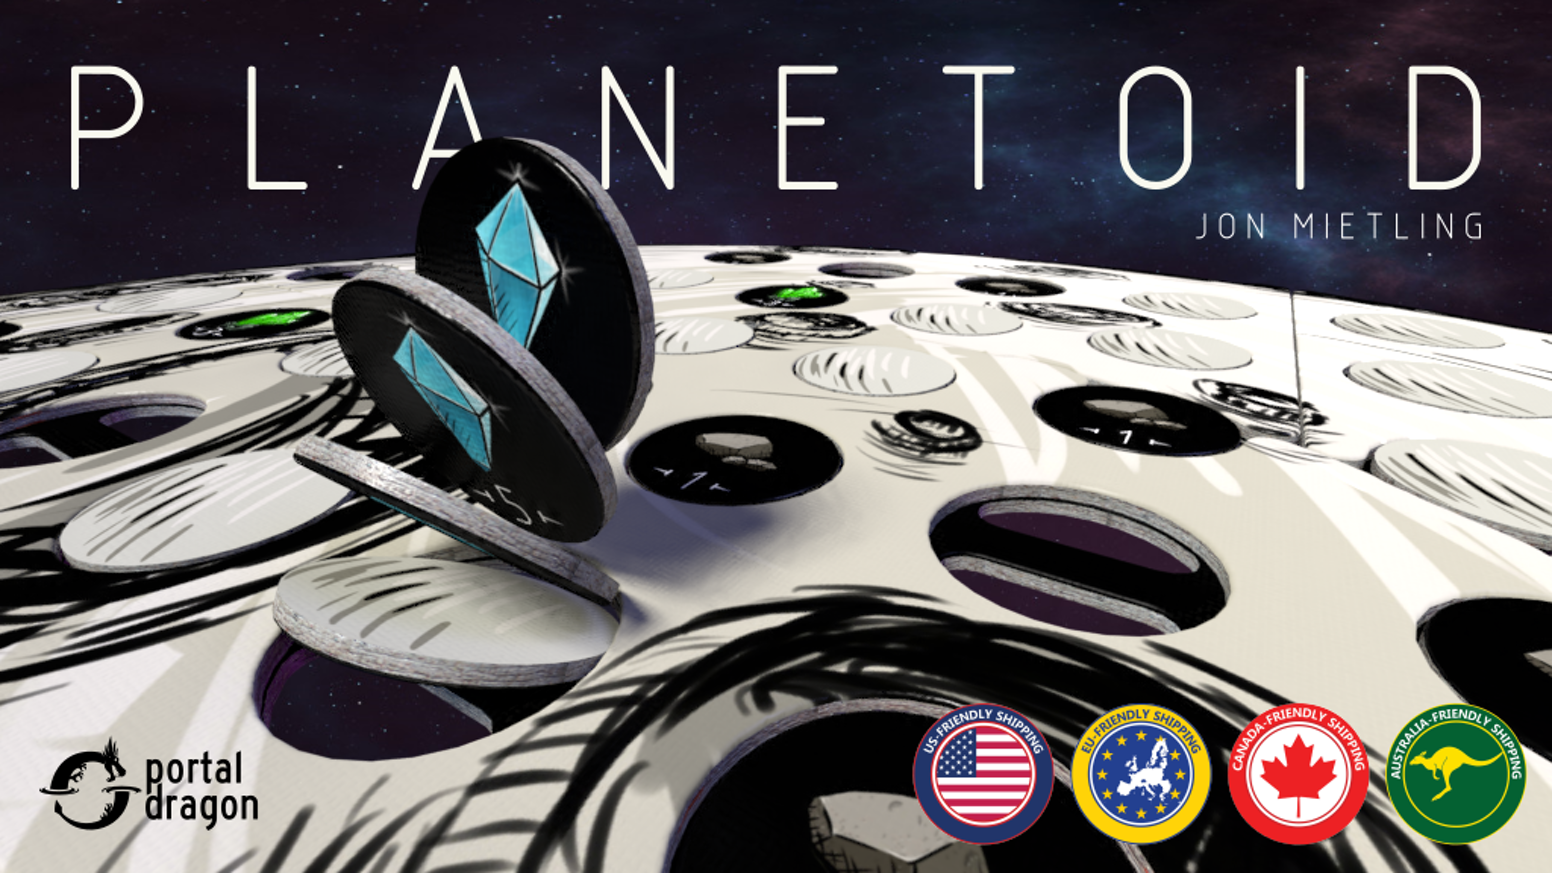 Scan the planetoid, drill high-value resources and gain bonuses in this quick-playing, 1-4 player game.